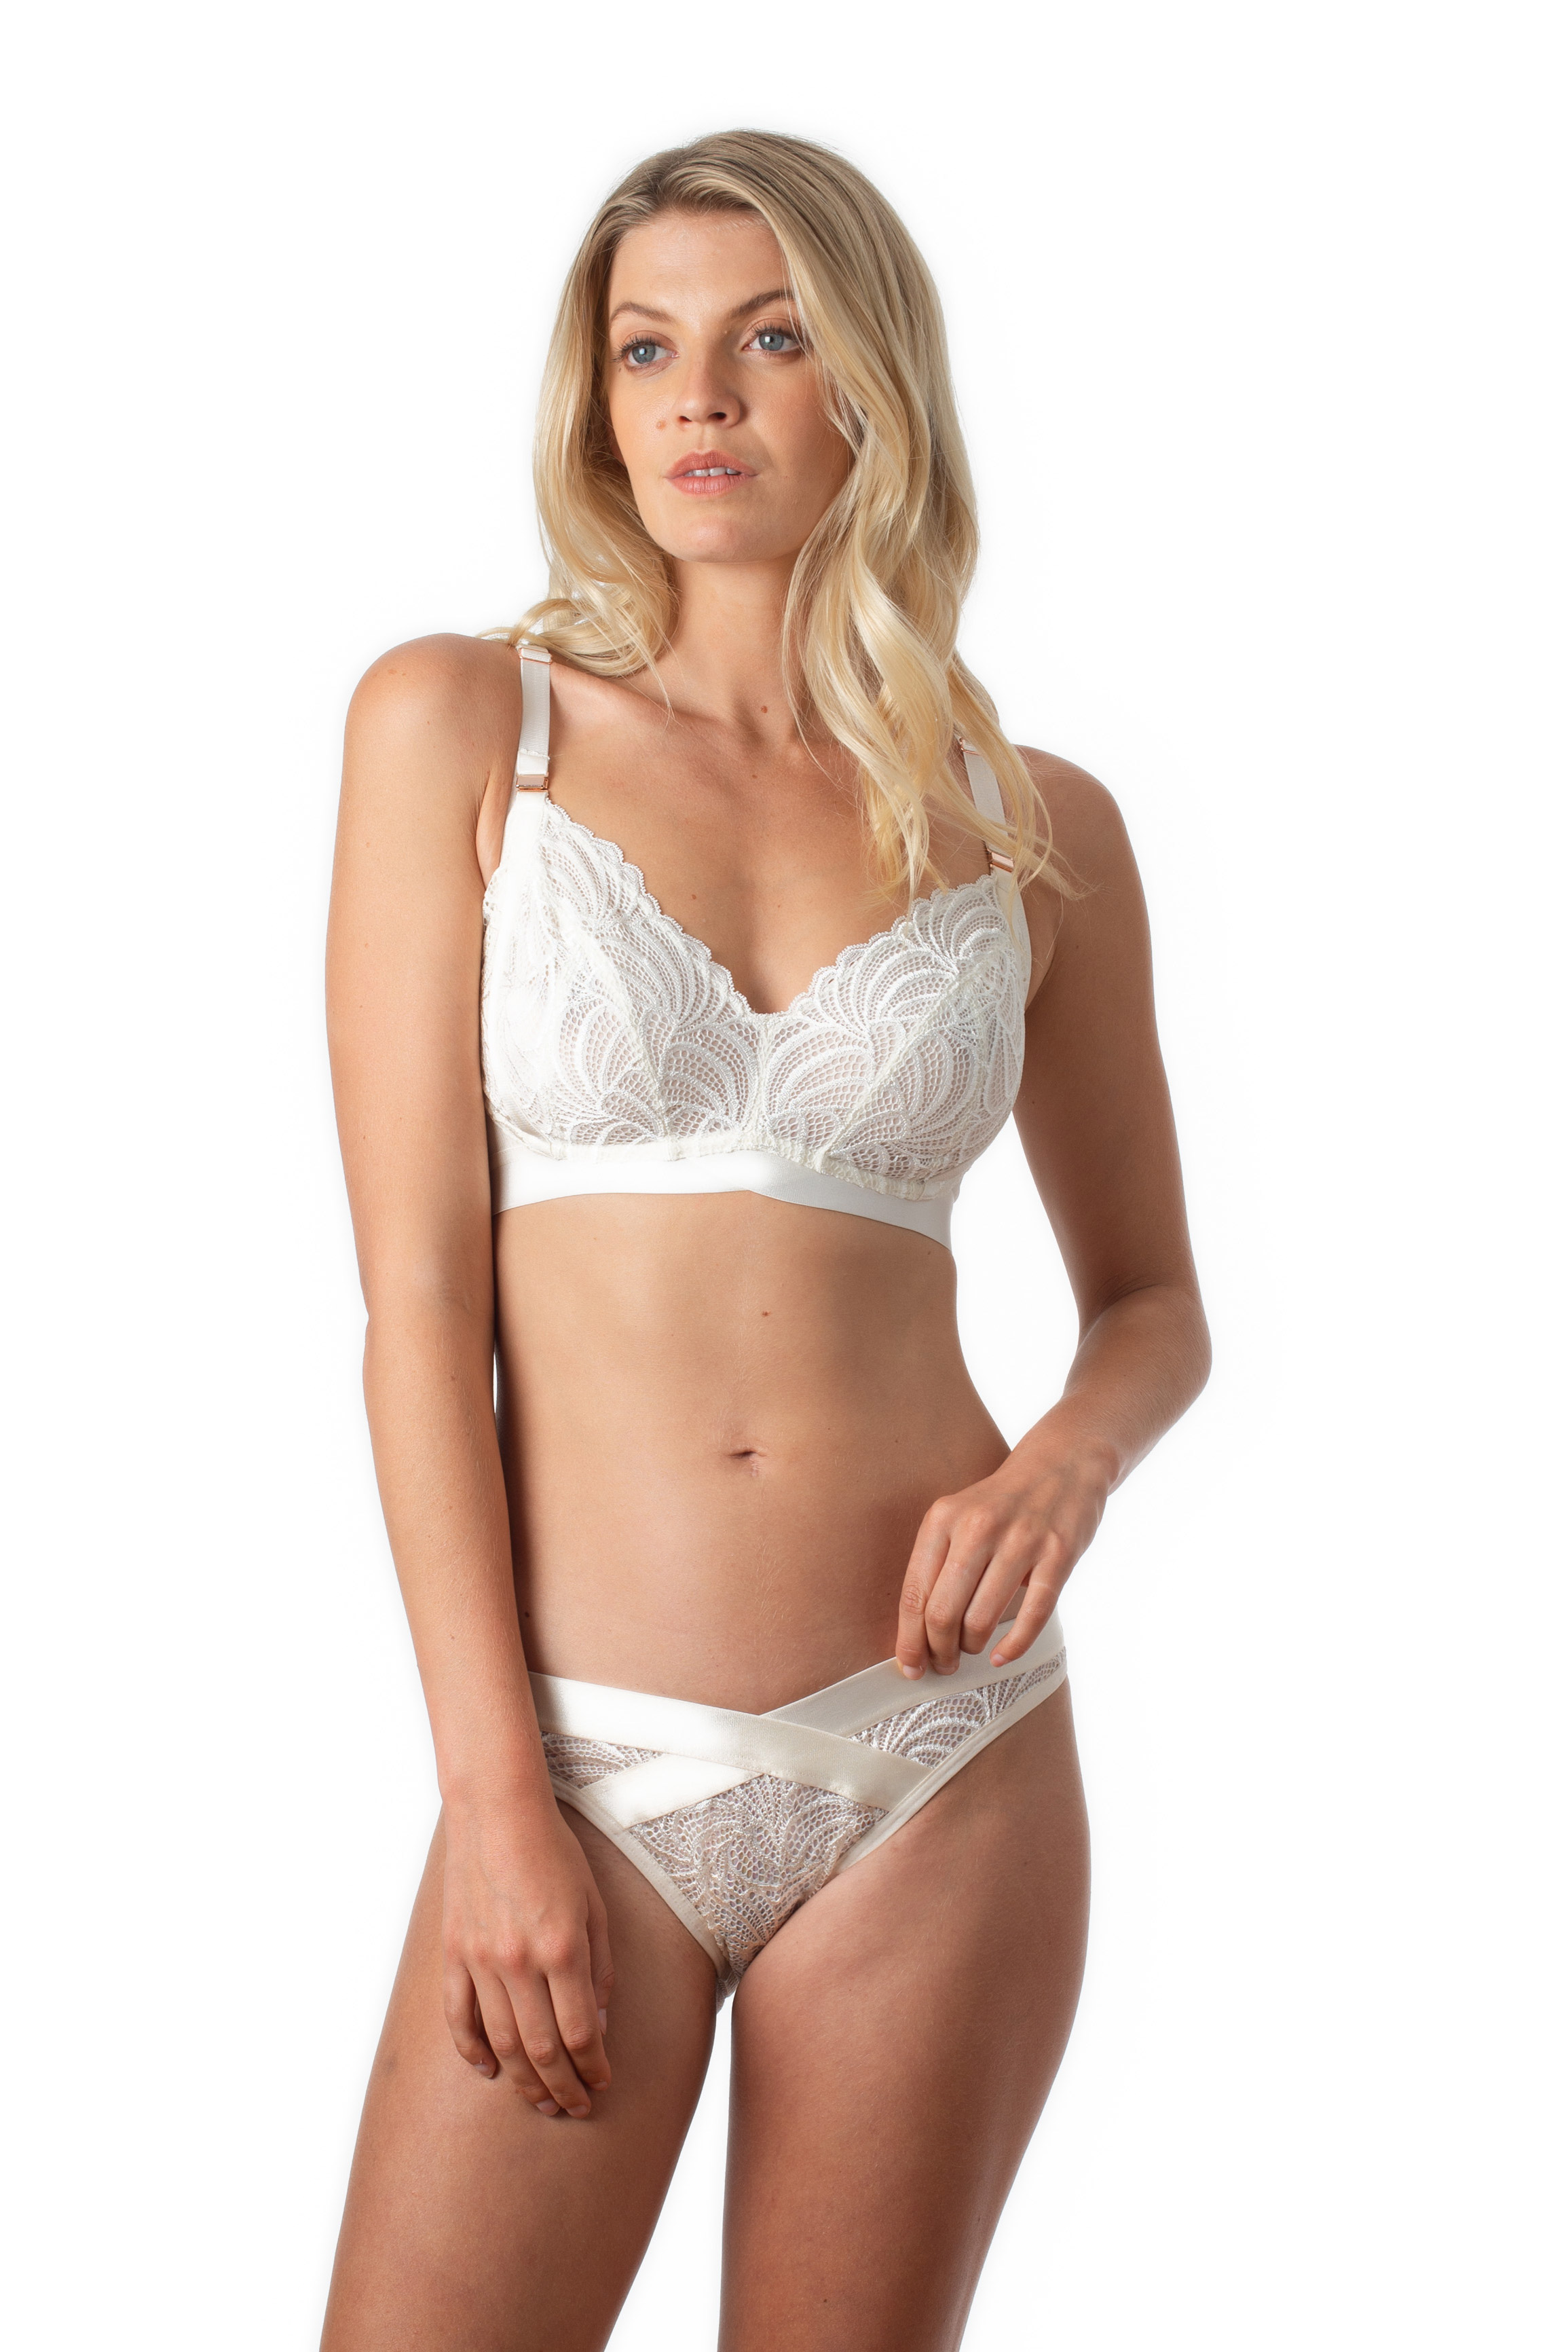 No Underwire and Seamless Mamma Mia PA0862 Cotton and Elegant Lace Nursing Bra Made in Italy Back Tank Top Maternity Bra with Unpadded Preformed Cups